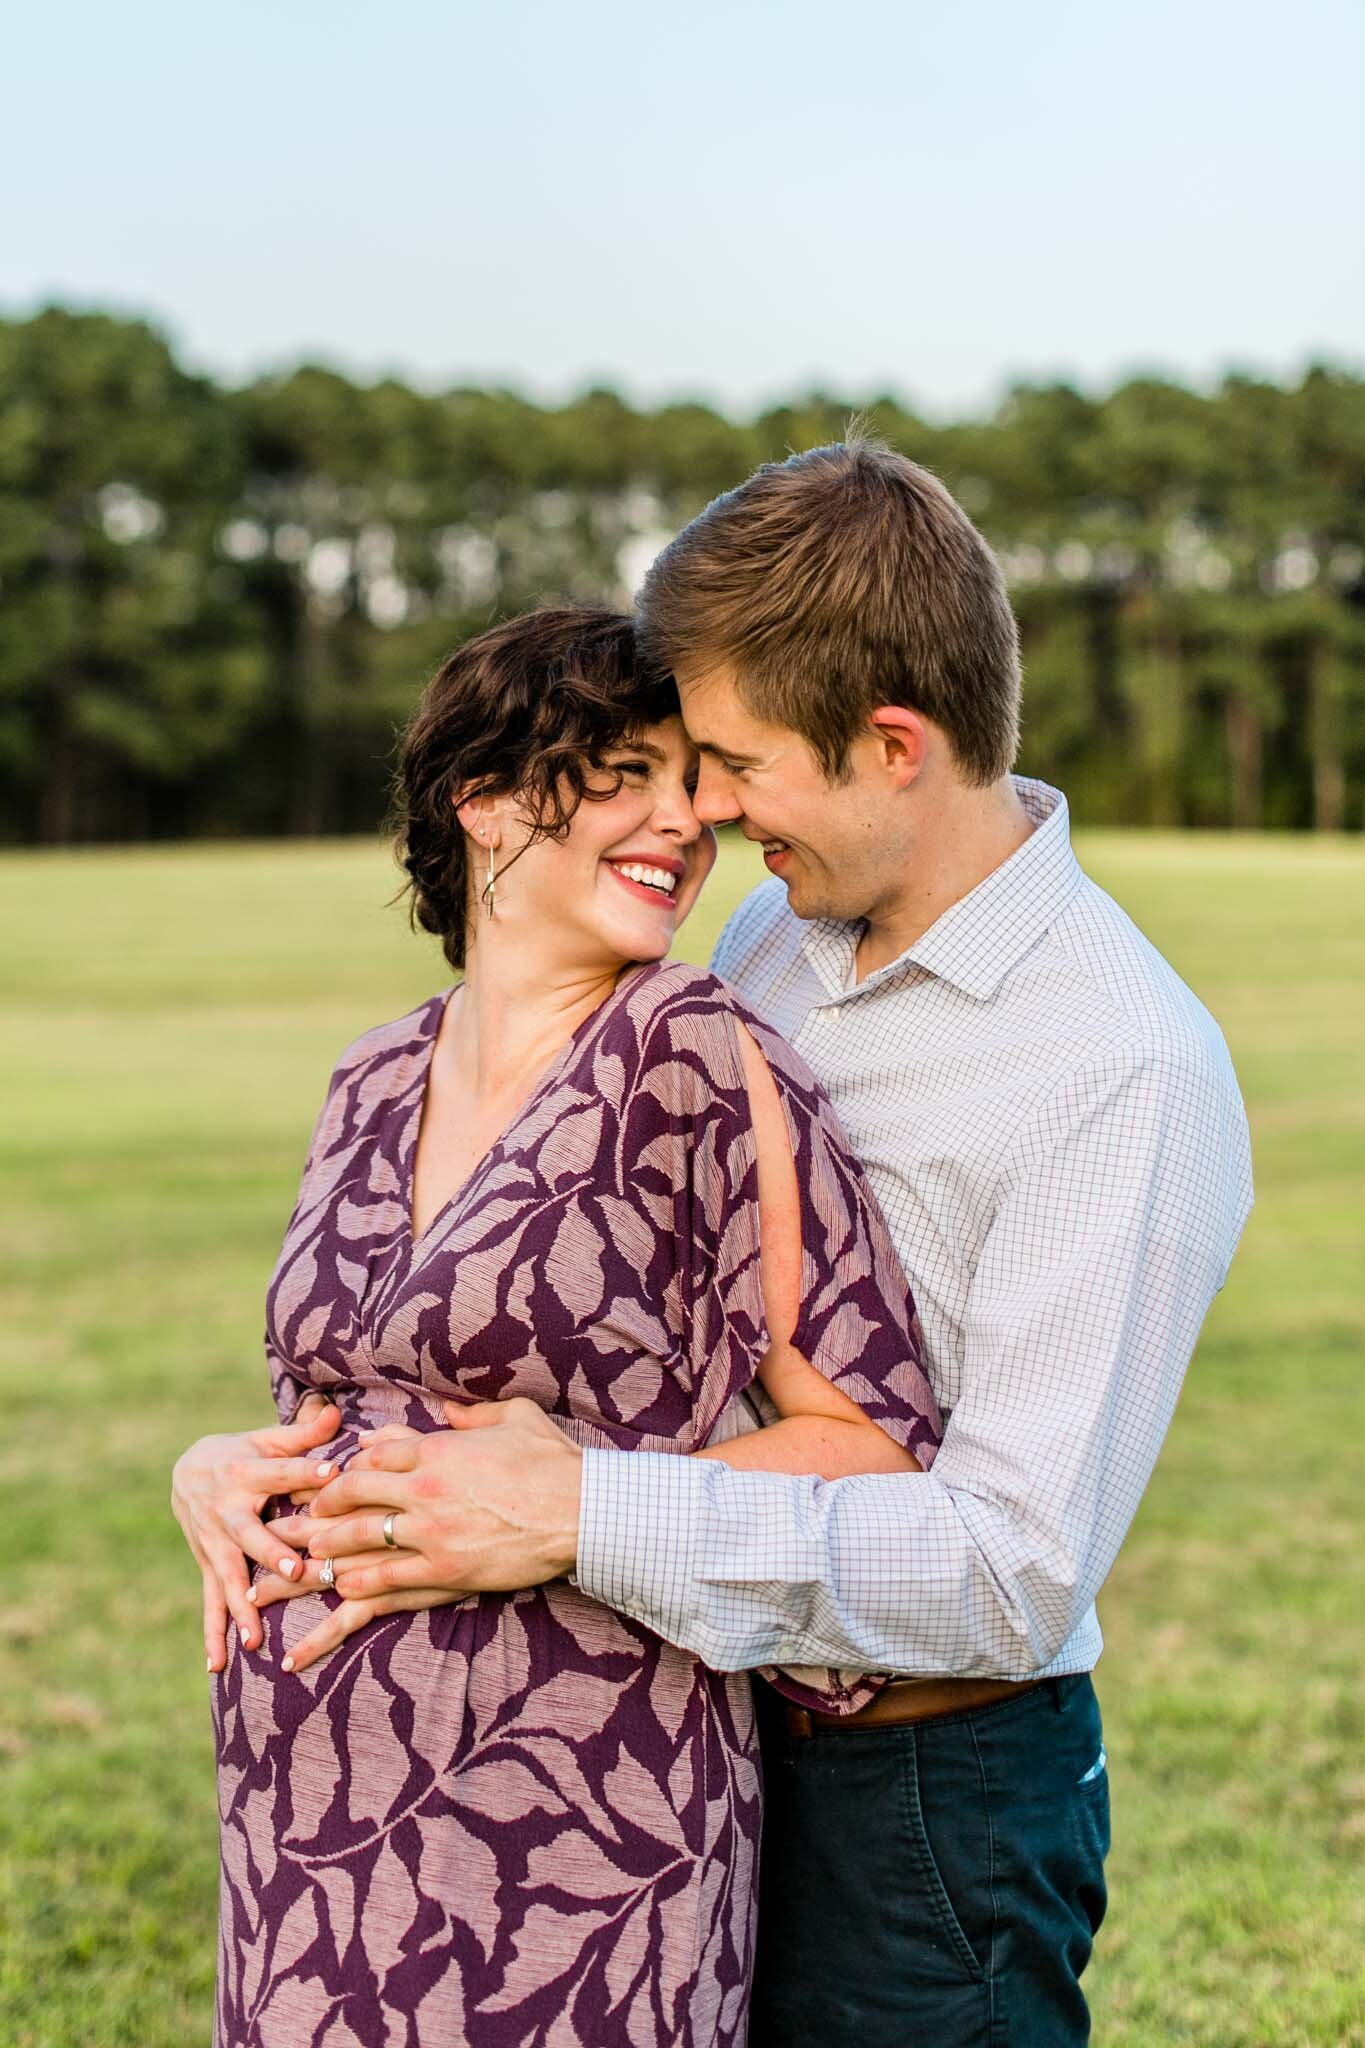 Raleigh Maternity Photography at Dix Park | By G. Lin Photography | Couple smiling together in open field